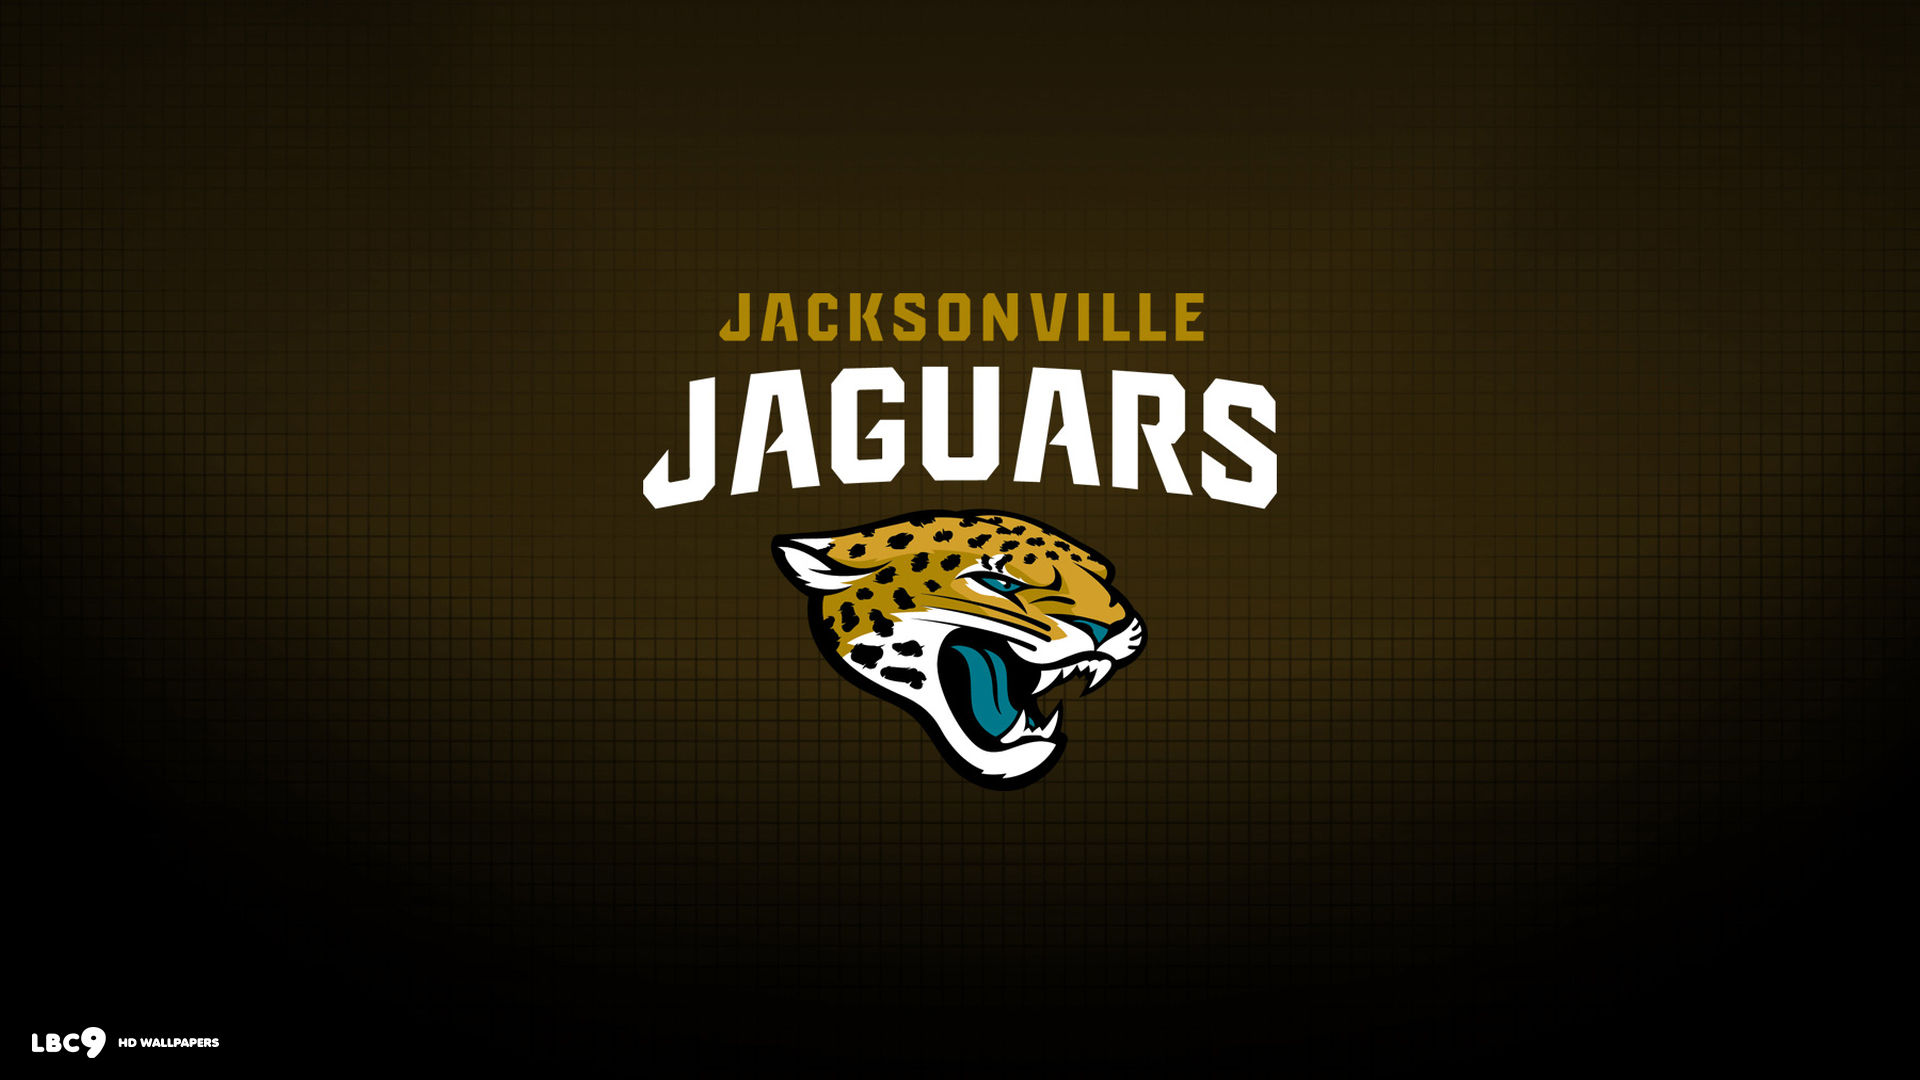 jacksonville jaguars new logo wallpapers - photo #8